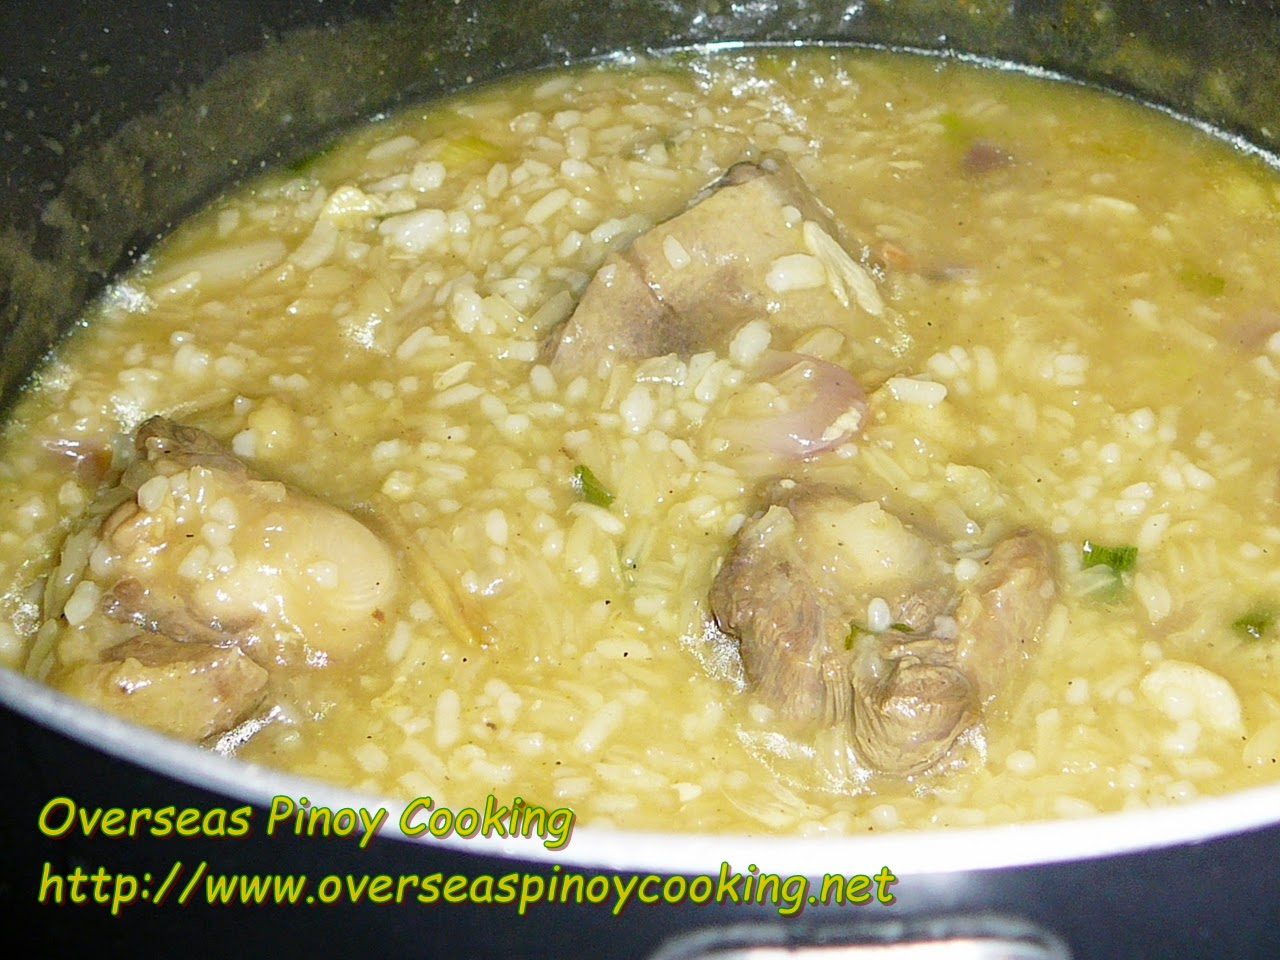 Oxtail Lugaw - Cooking Procedure